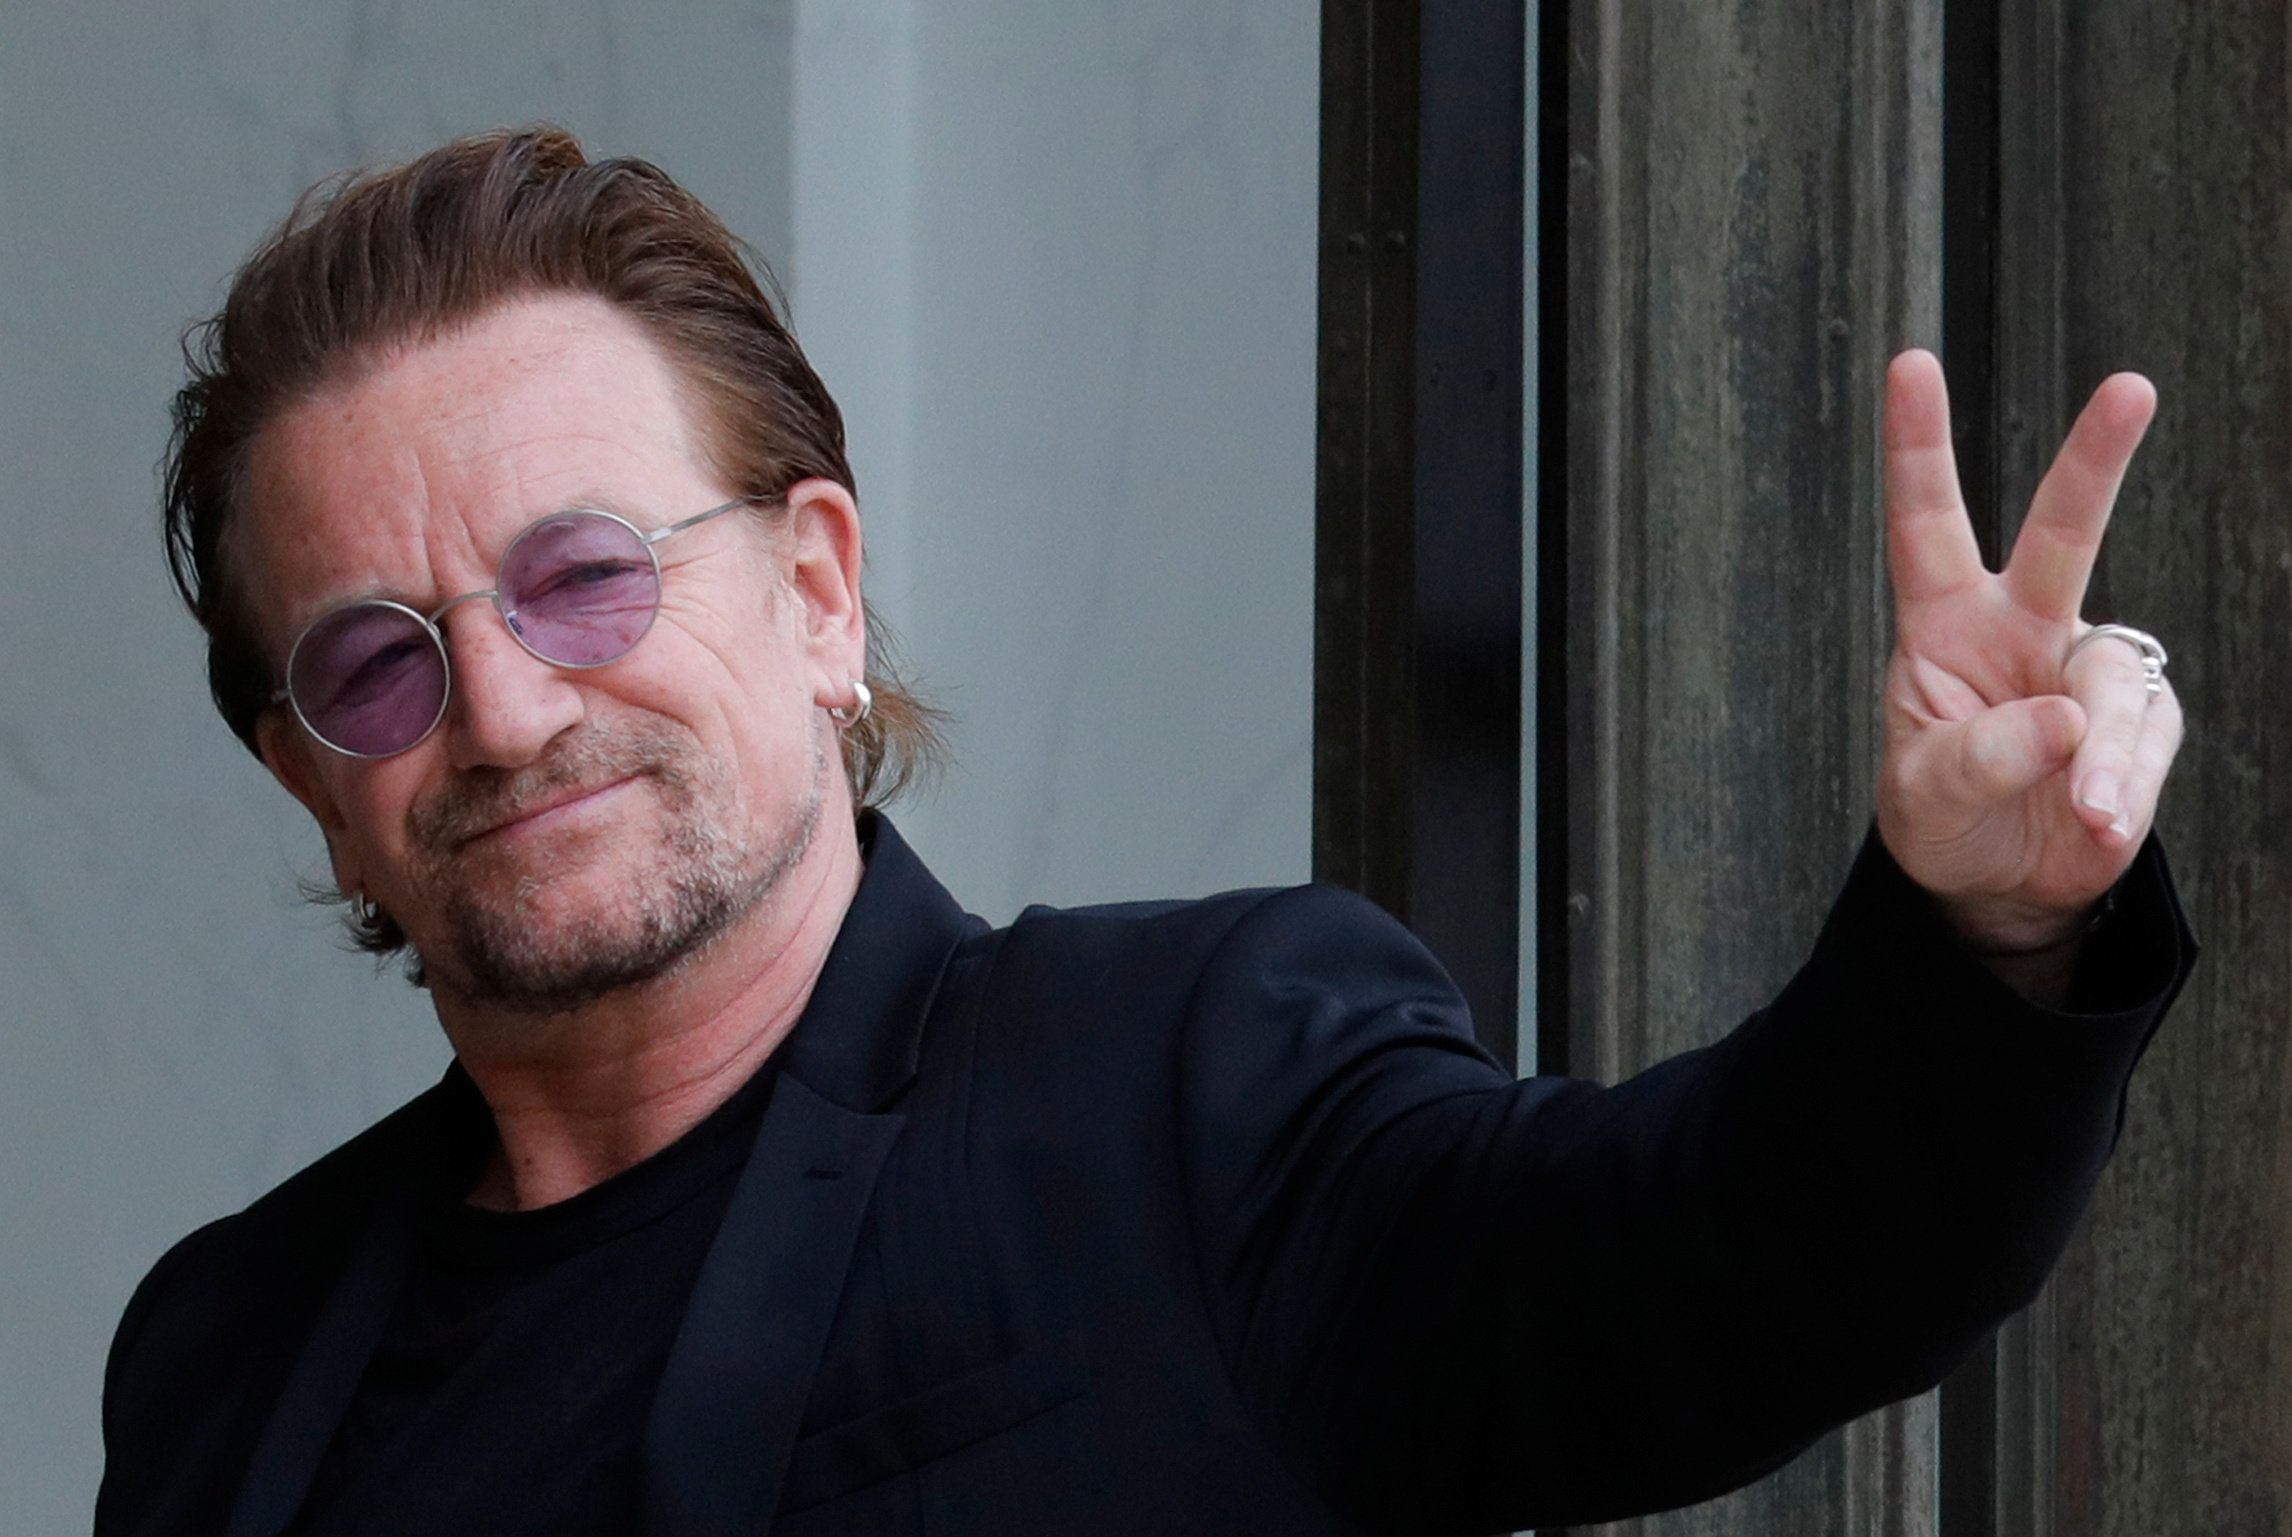 Bono waves as he arrives at the Elysee Palace in Paris, France on July 24.